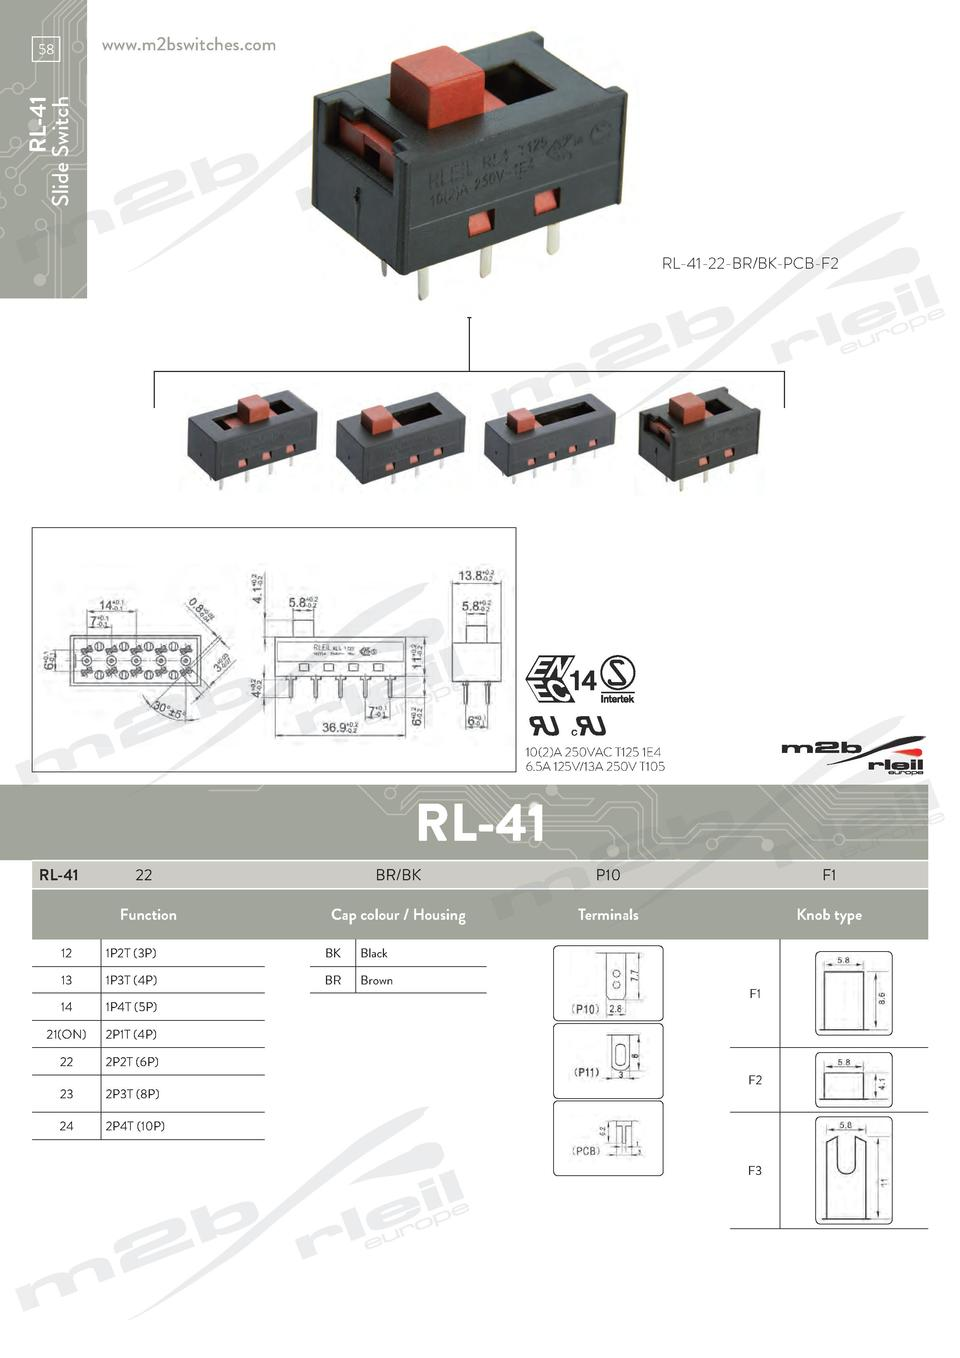 hight resolution of www m2bswitches com rl 41 slide switch 58 rl 41 22